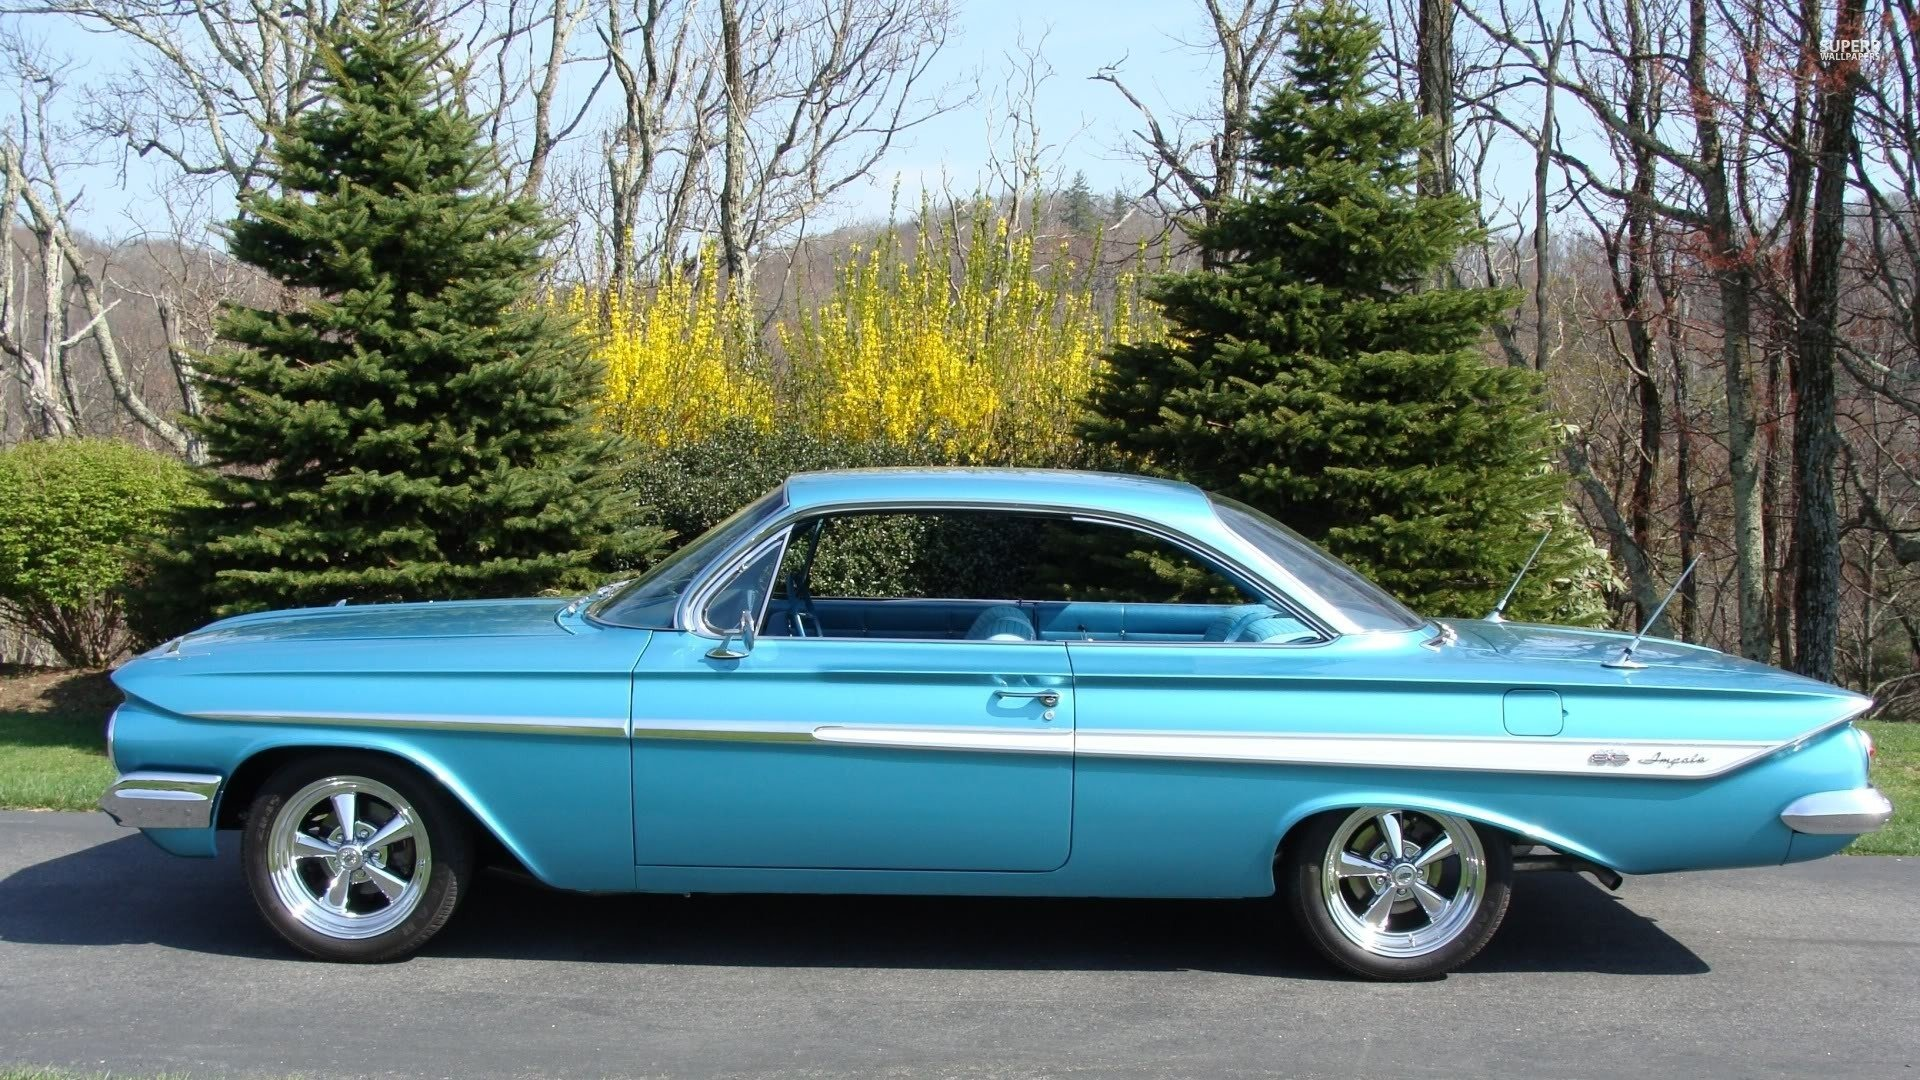 1959 Chevrolet Impala Hardtop wallpapers HD quality